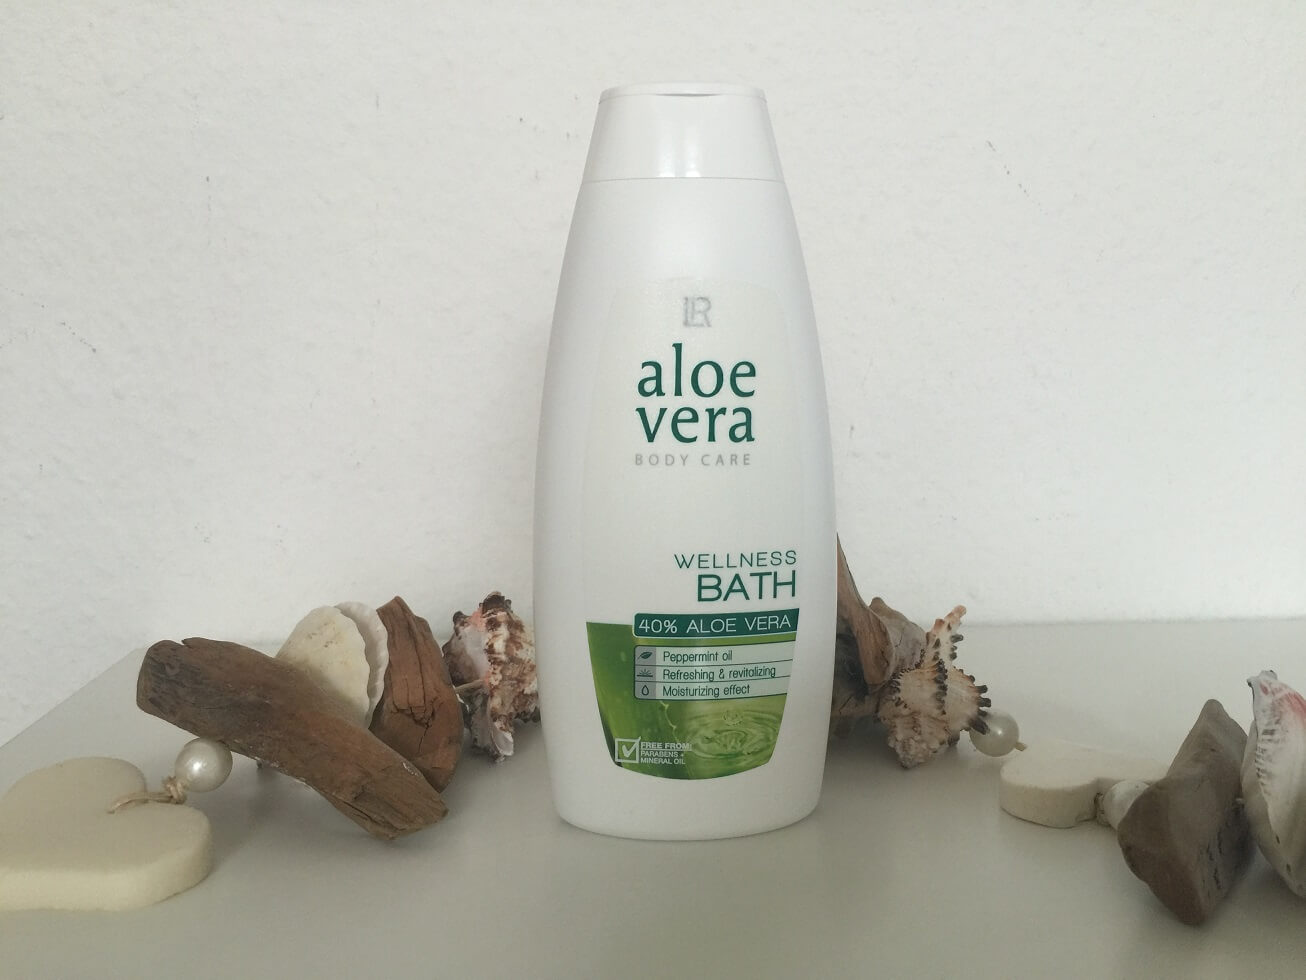 LR Aloe Vera Wellness Bad Vorn